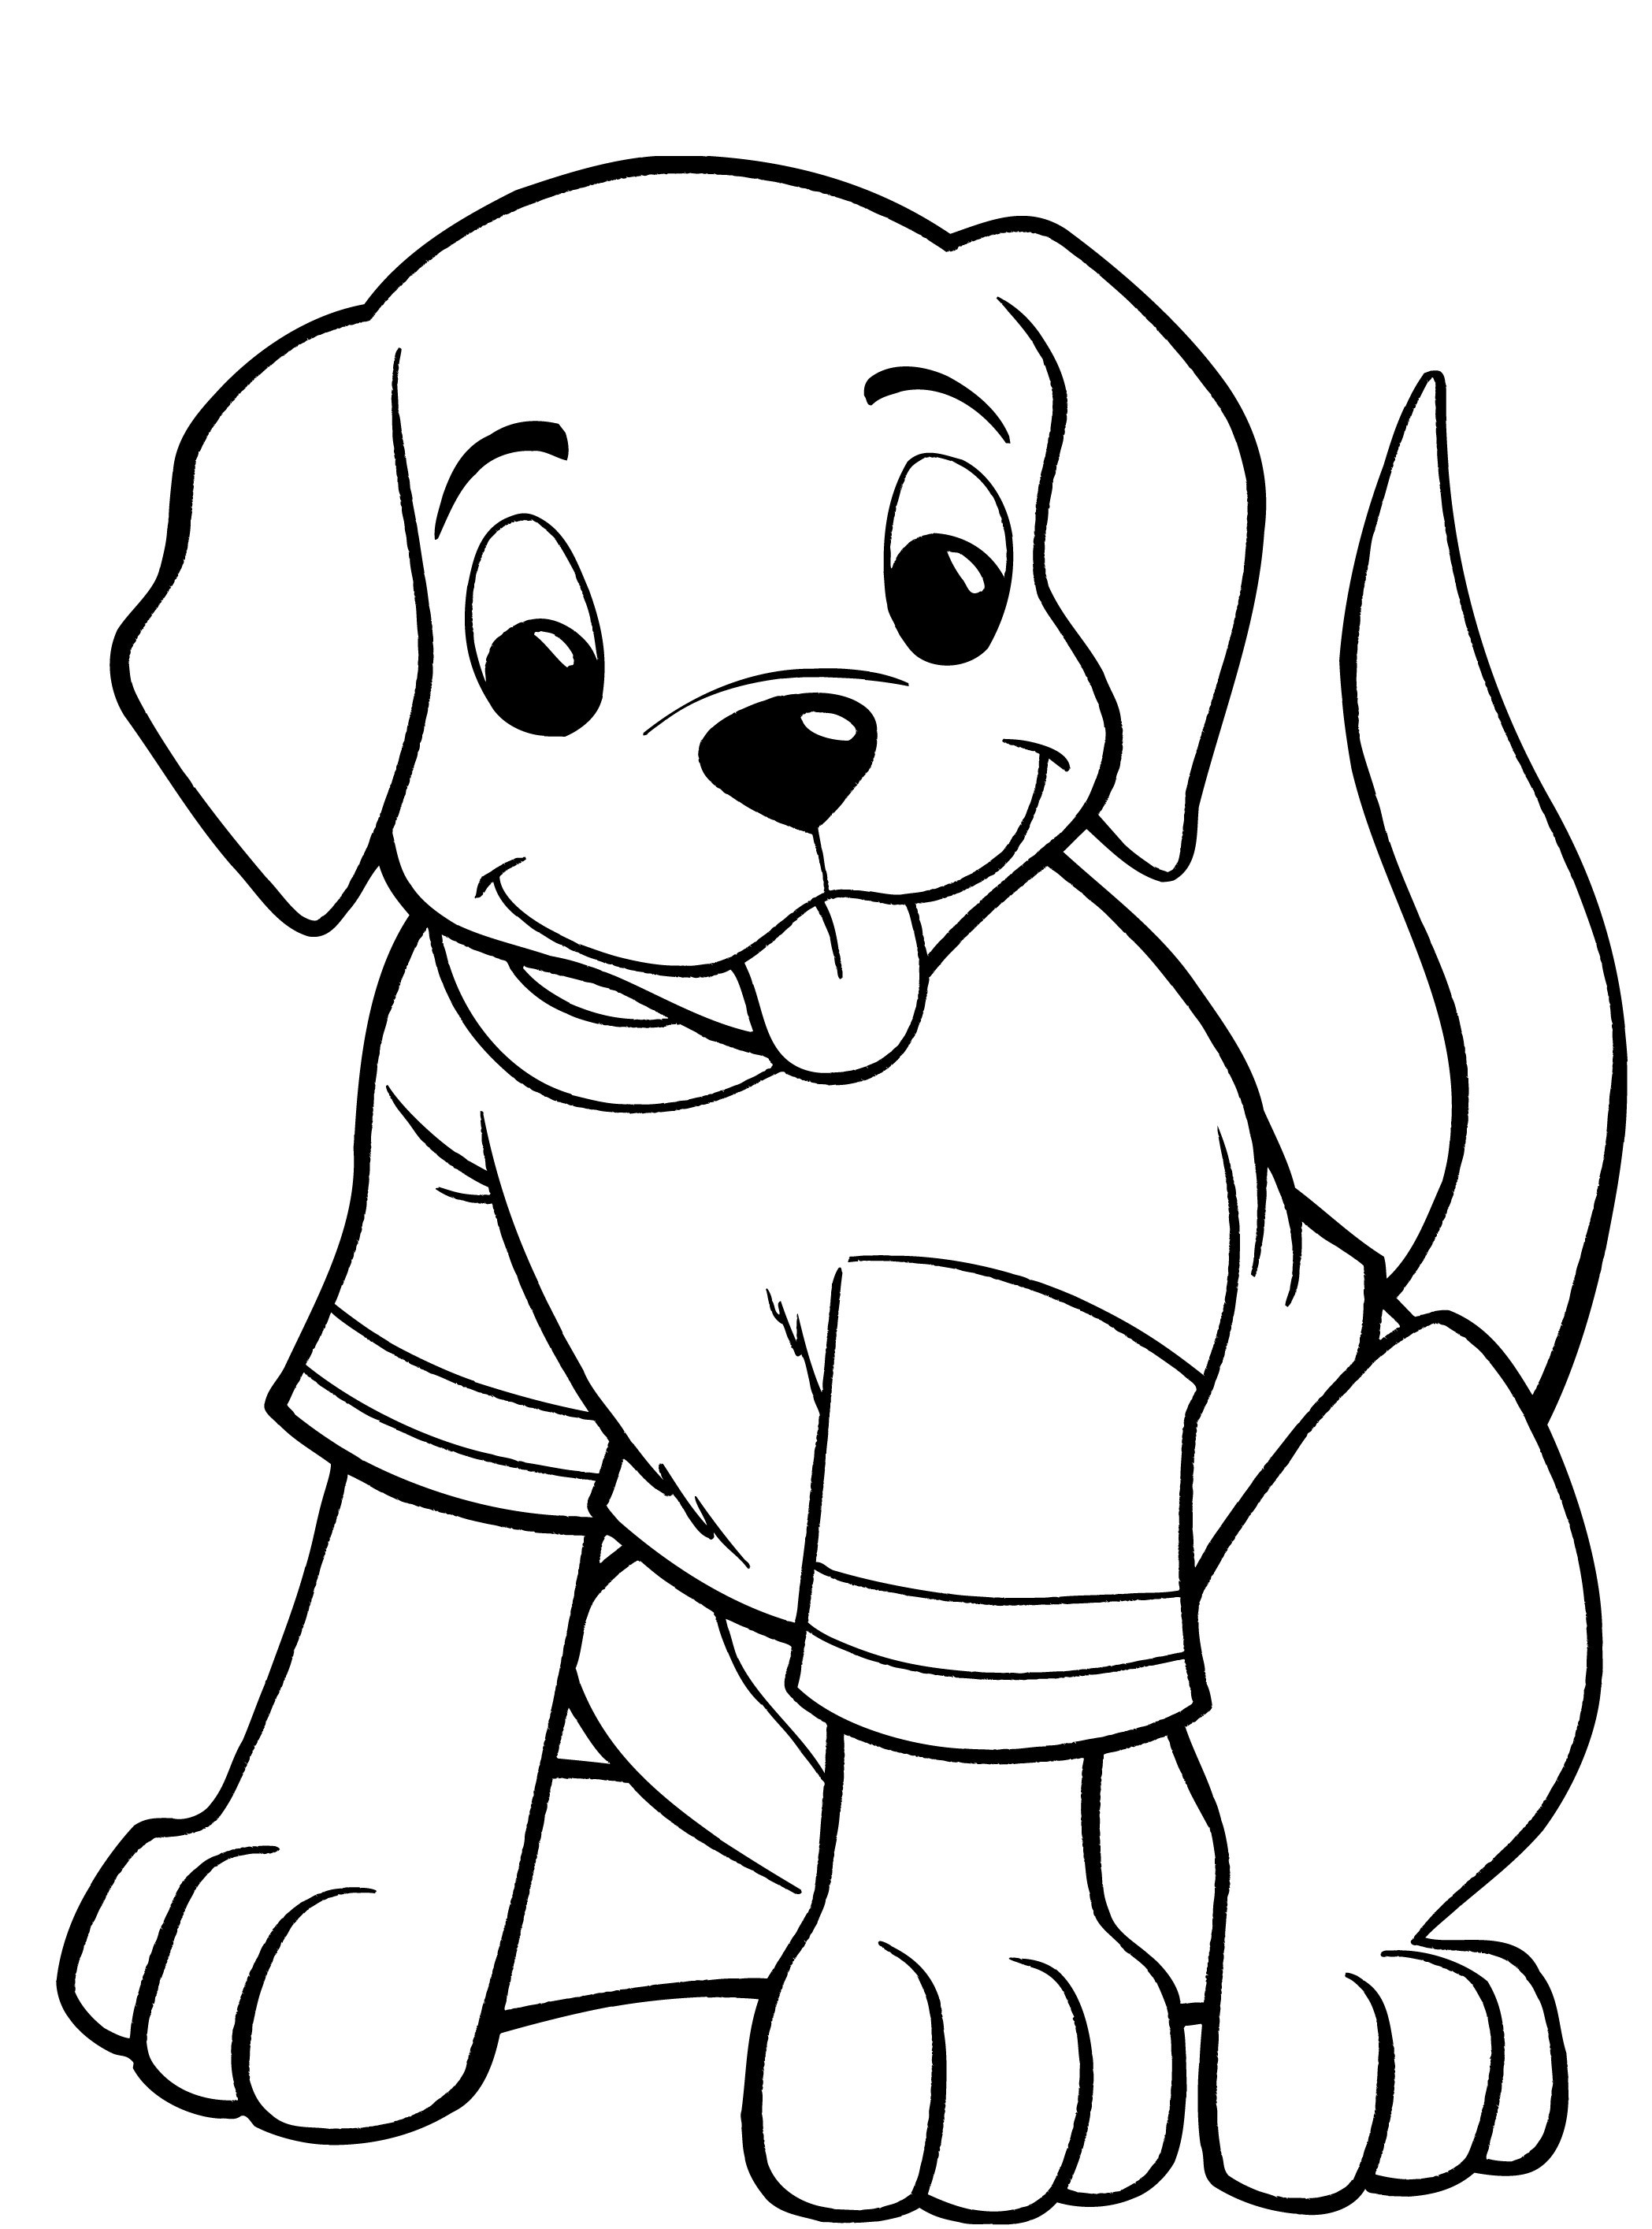 coloring pages of dogs dog coloring pages for kids preschool and kindergarten